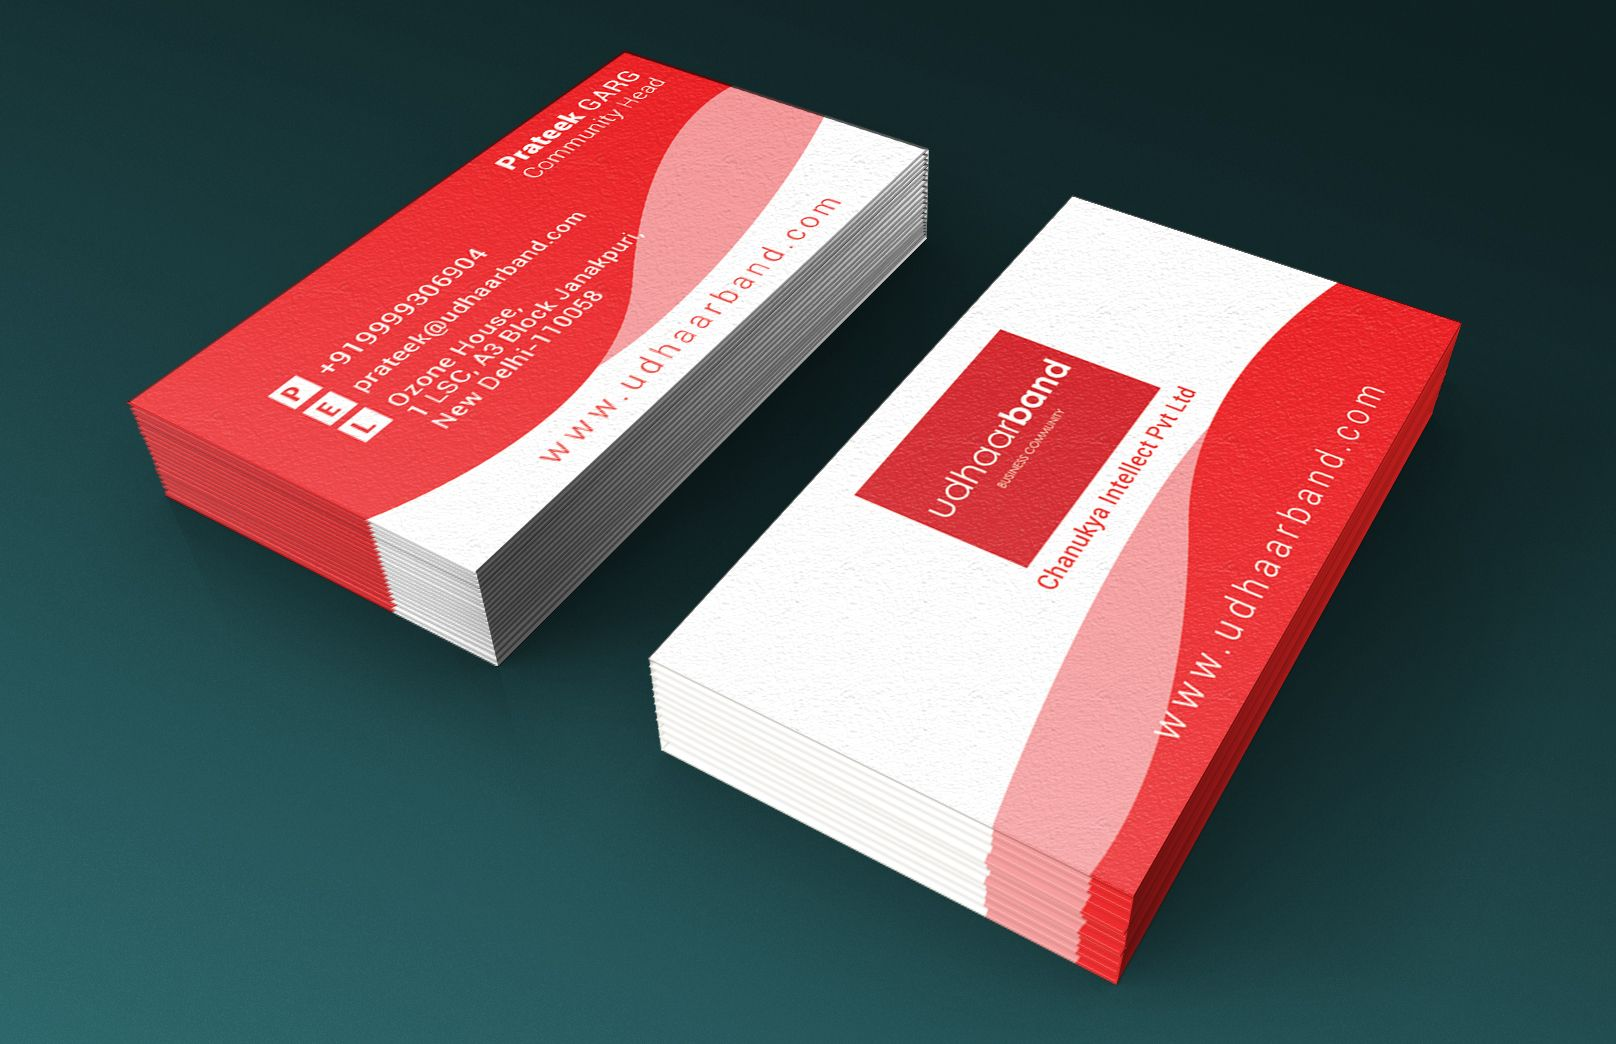 Design professional minimal business card within 3 hours minimal ctcoder i will design professional minimal business card within 3 hours for 5 on fiverr colourmoves Choice Image